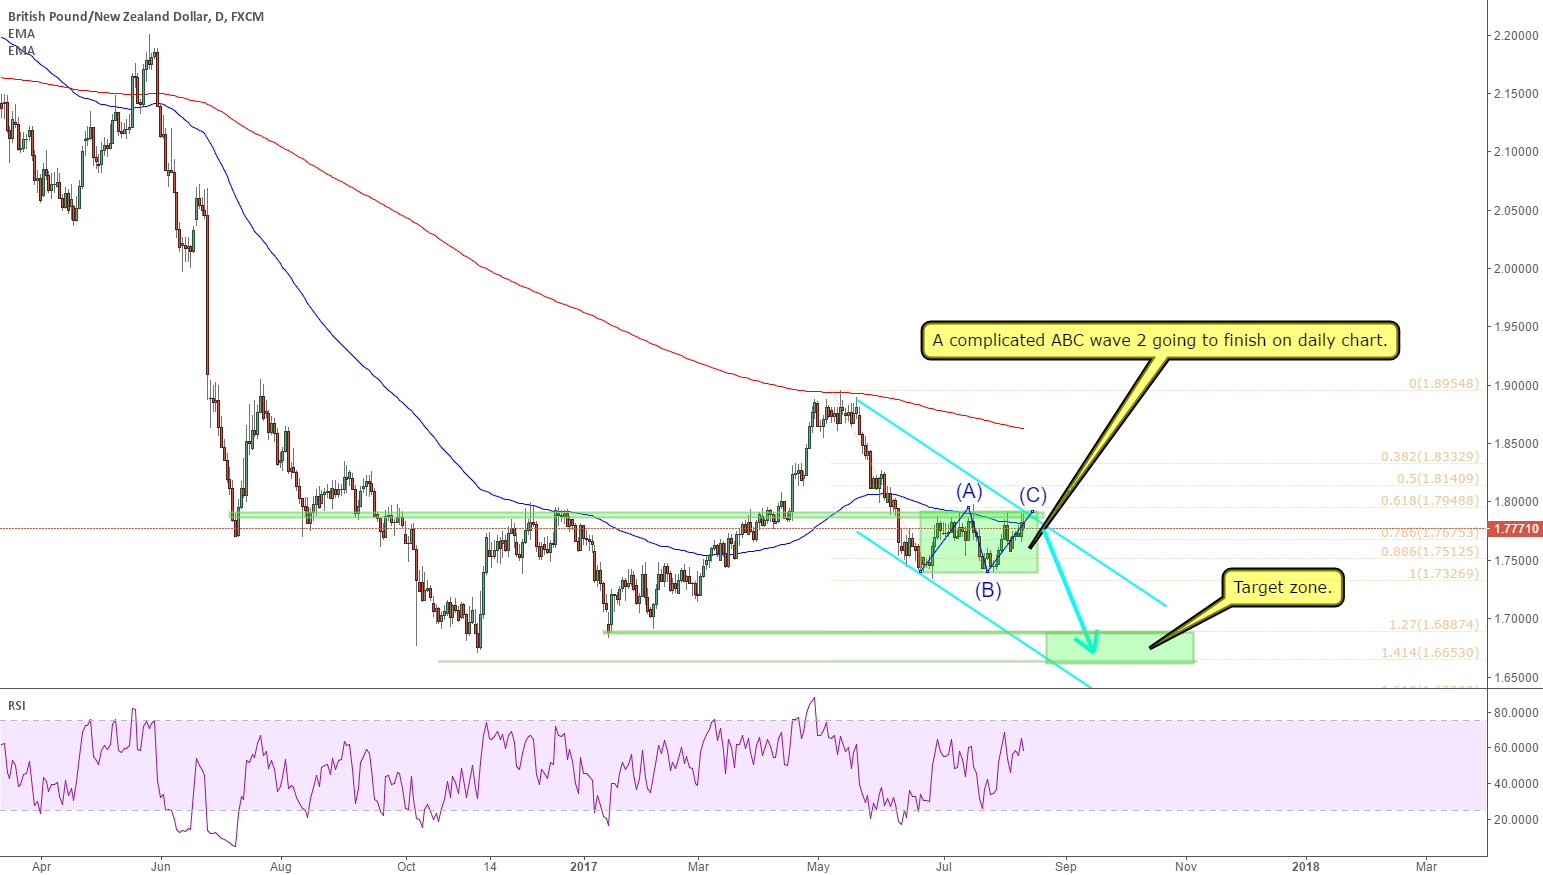 GBPNZD: a abc wave 2 going to finish and short trade ready.